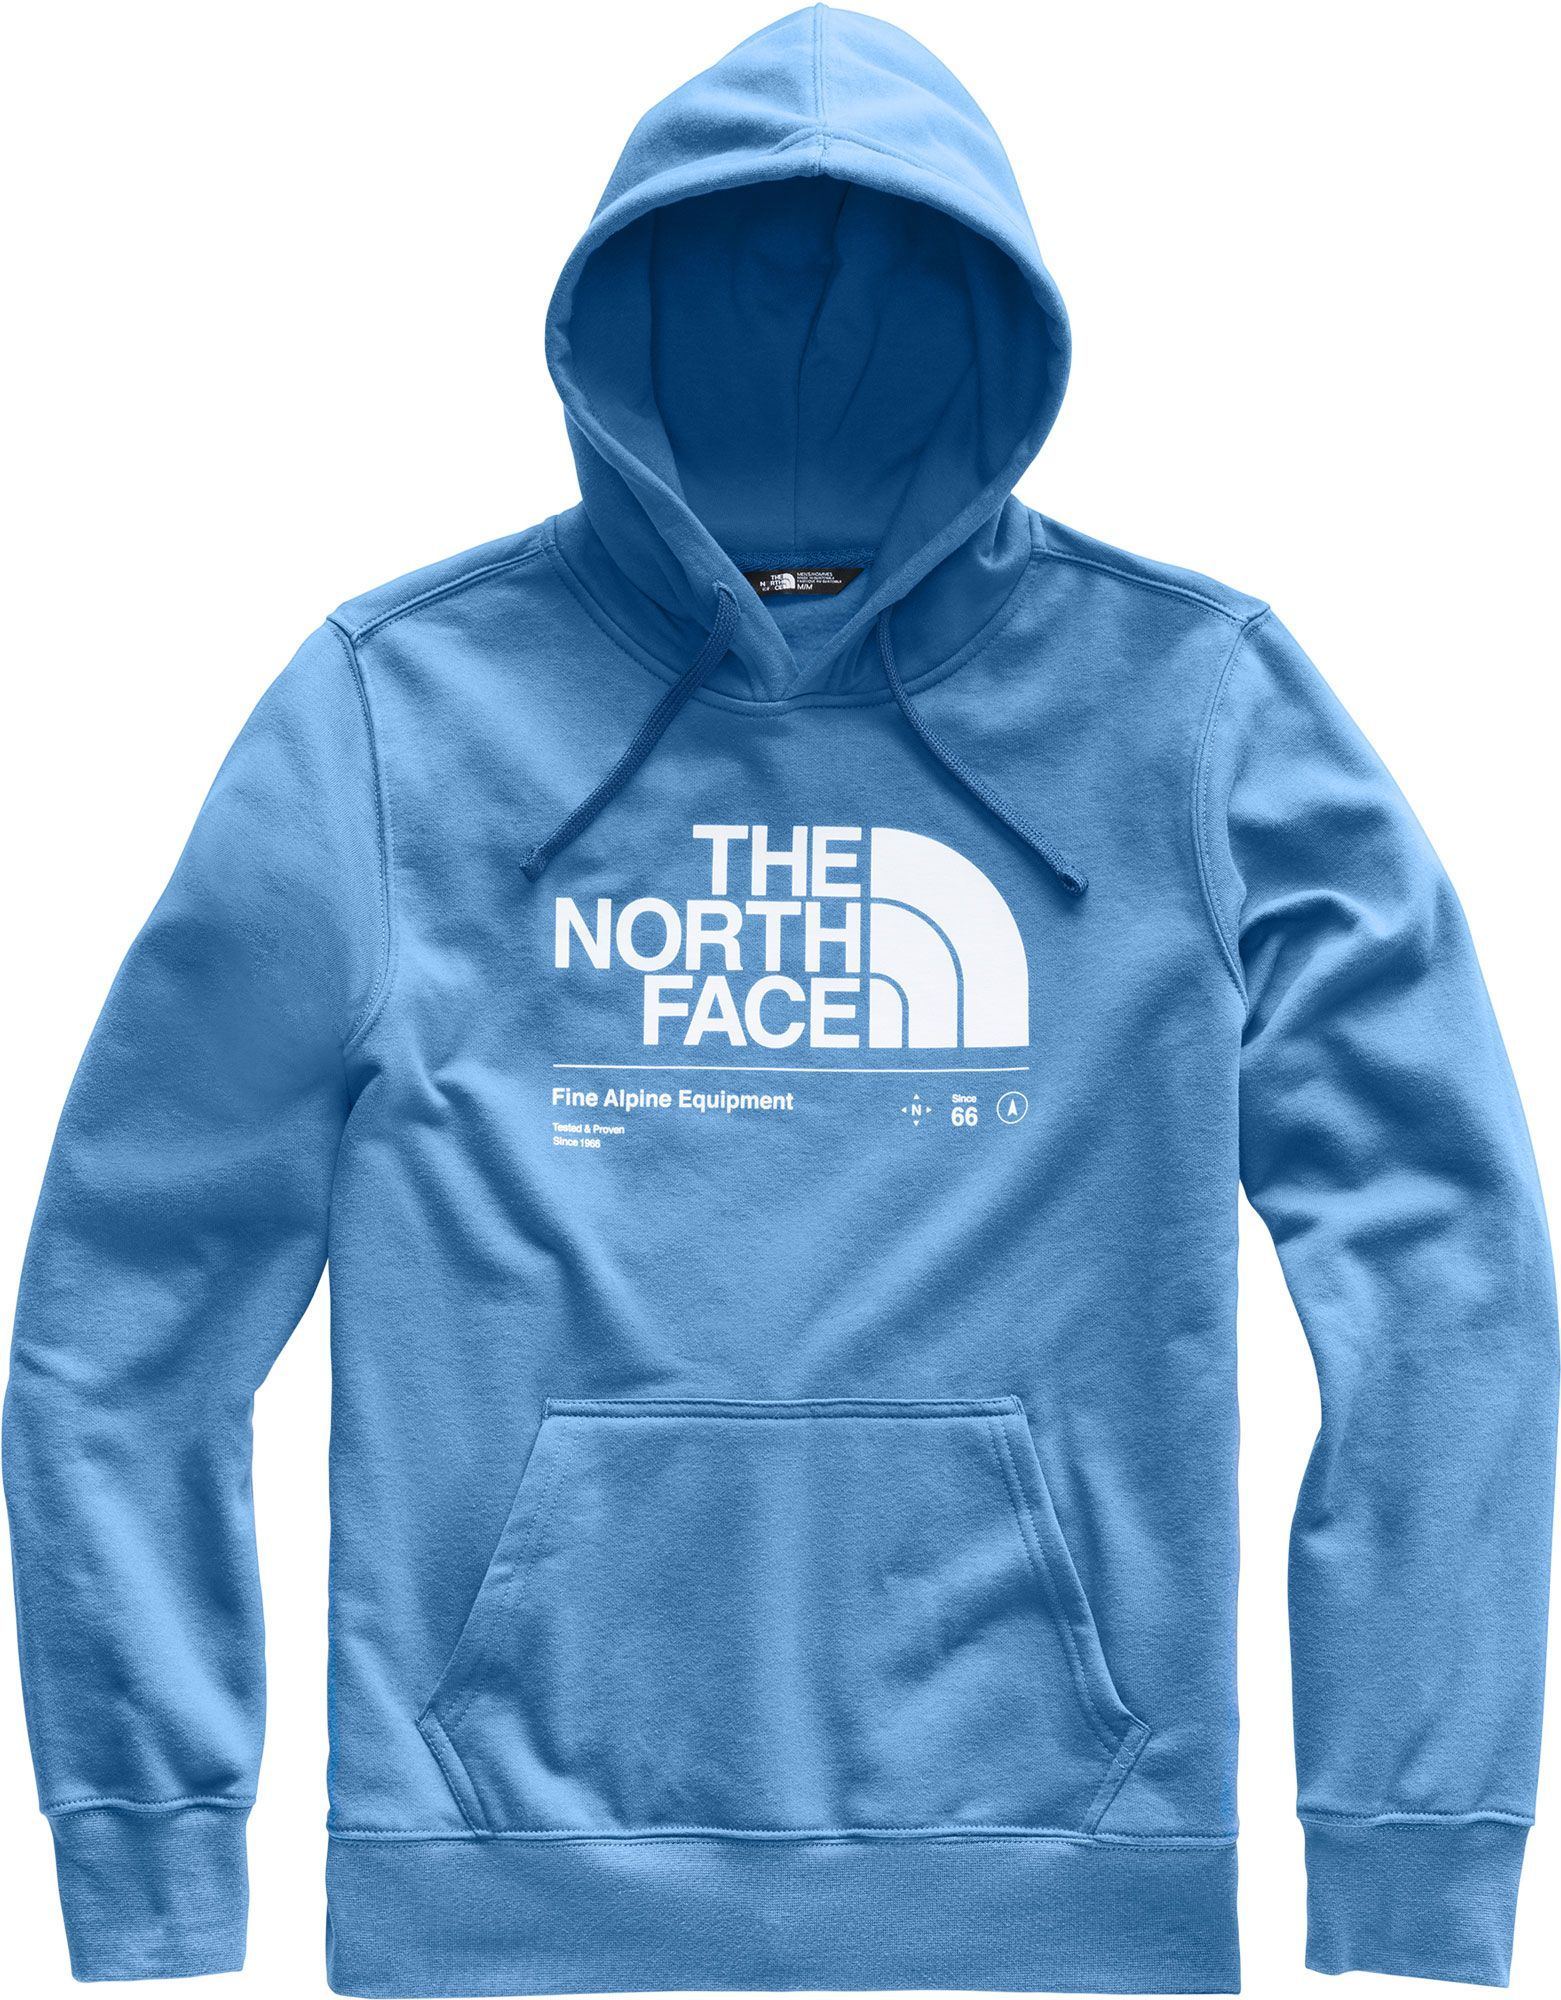 The North Face Men's Half Dome Explore Hoodie, Size: Small